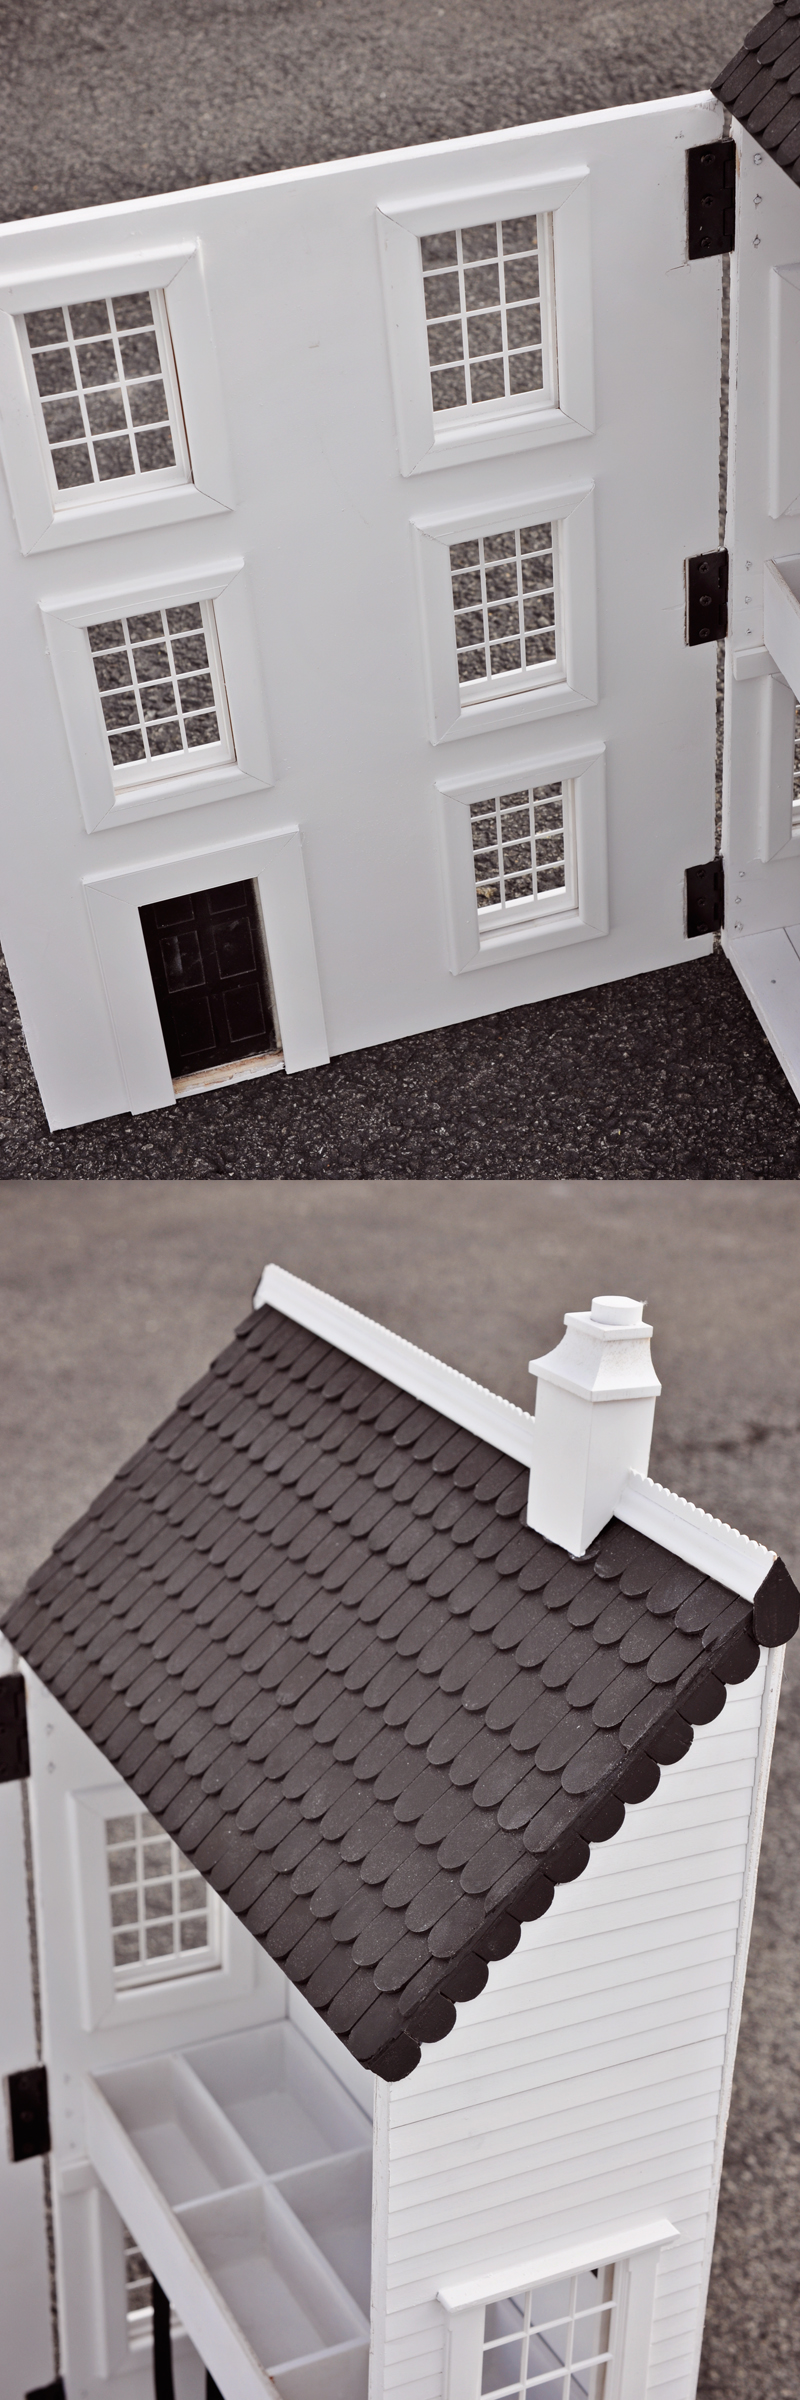 Build a dollhouse and store hair accessories inside! So cute for art supplies or other girly treasures, too. Tutorial on Remodelaholic.com